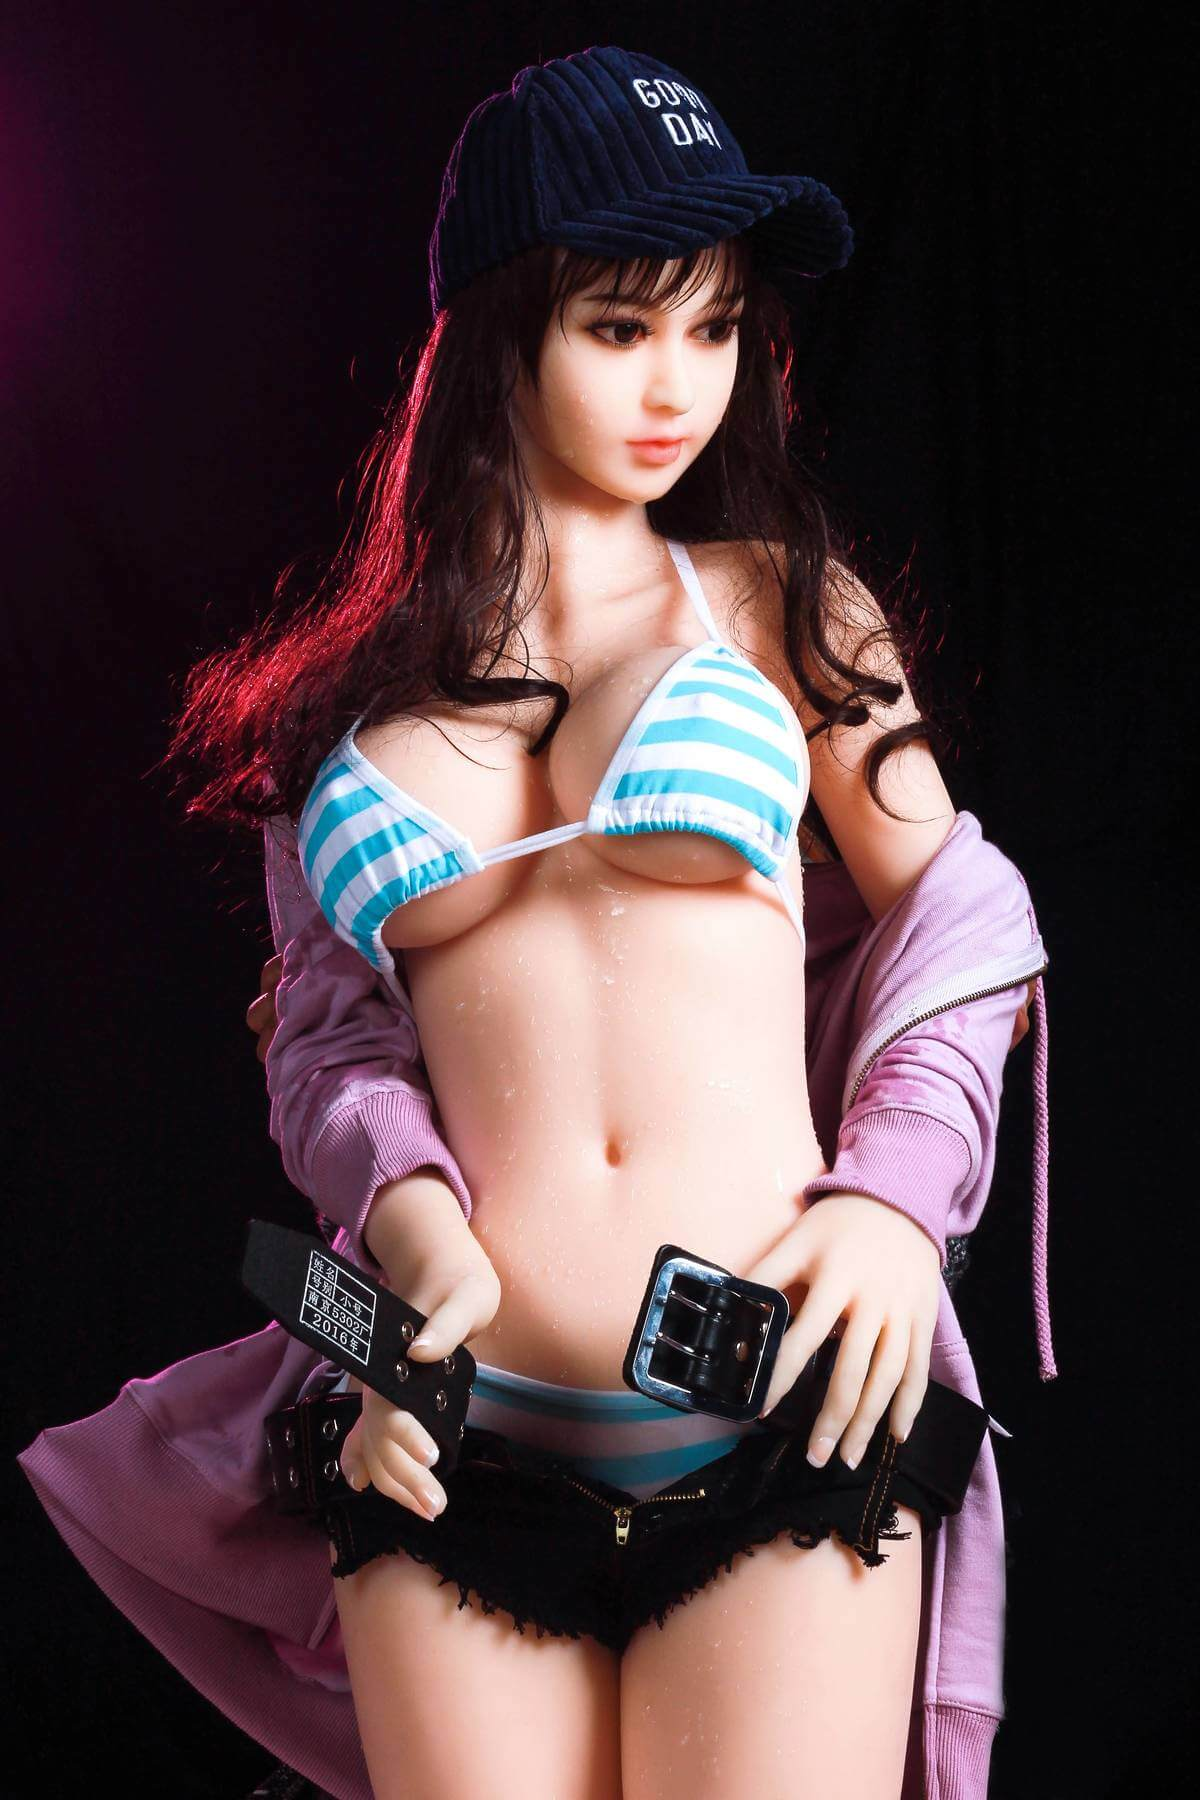 Asian Anime Sex Doll - Sport Girl Love Doll- Alice